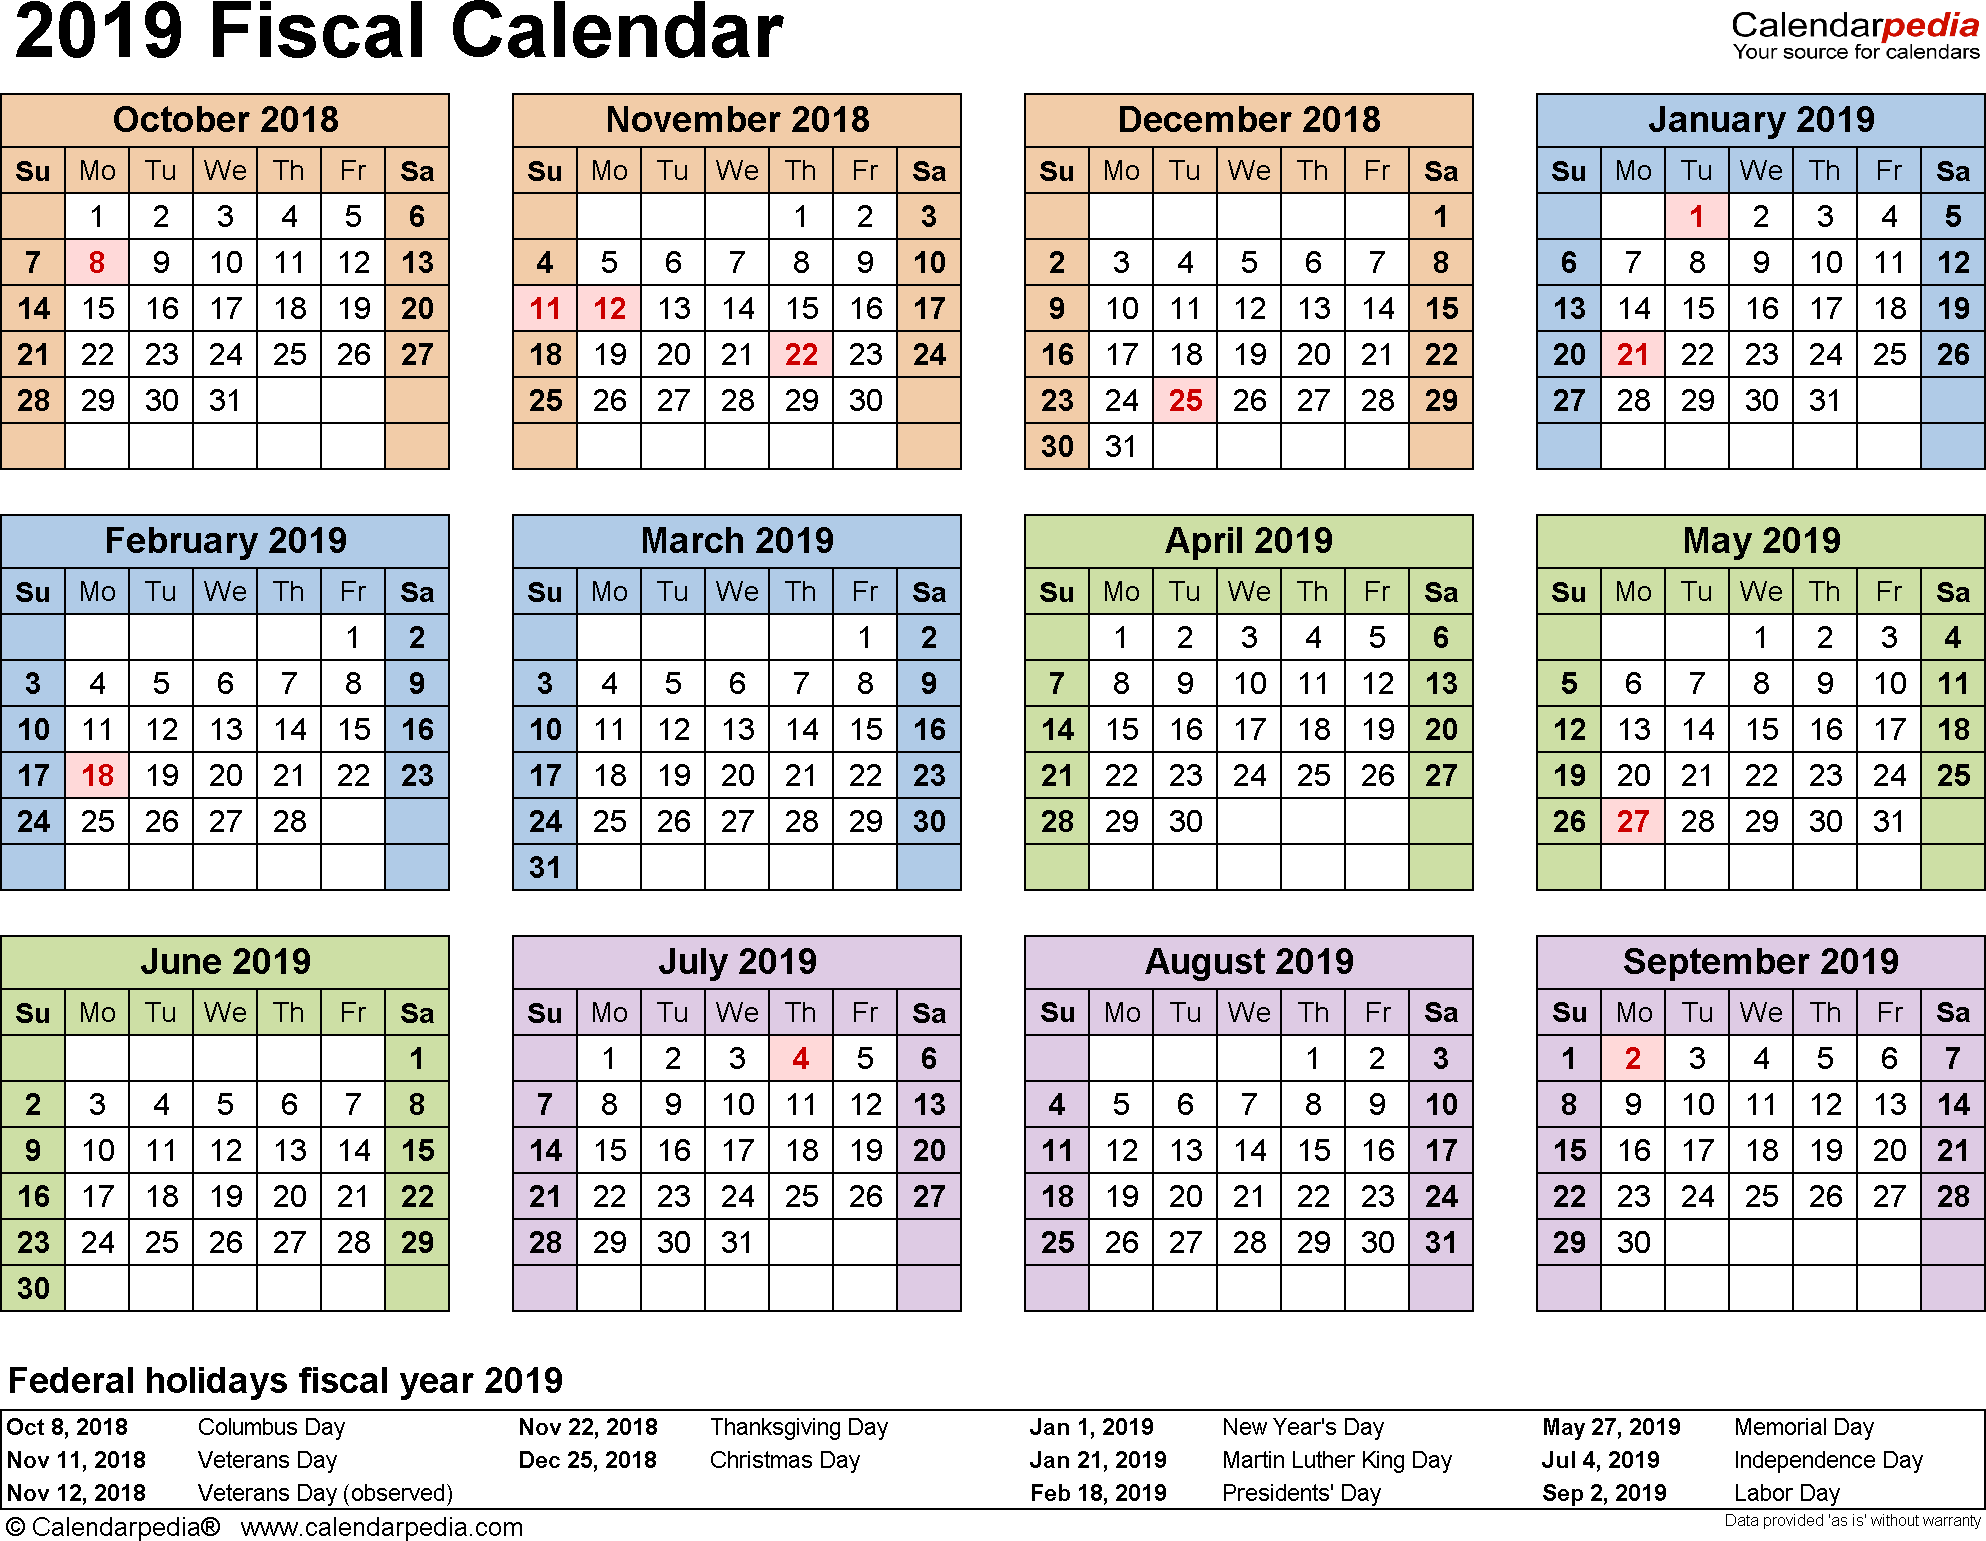 template 4 fiscal year calendar 2019 for pdf landscape orientation year at a